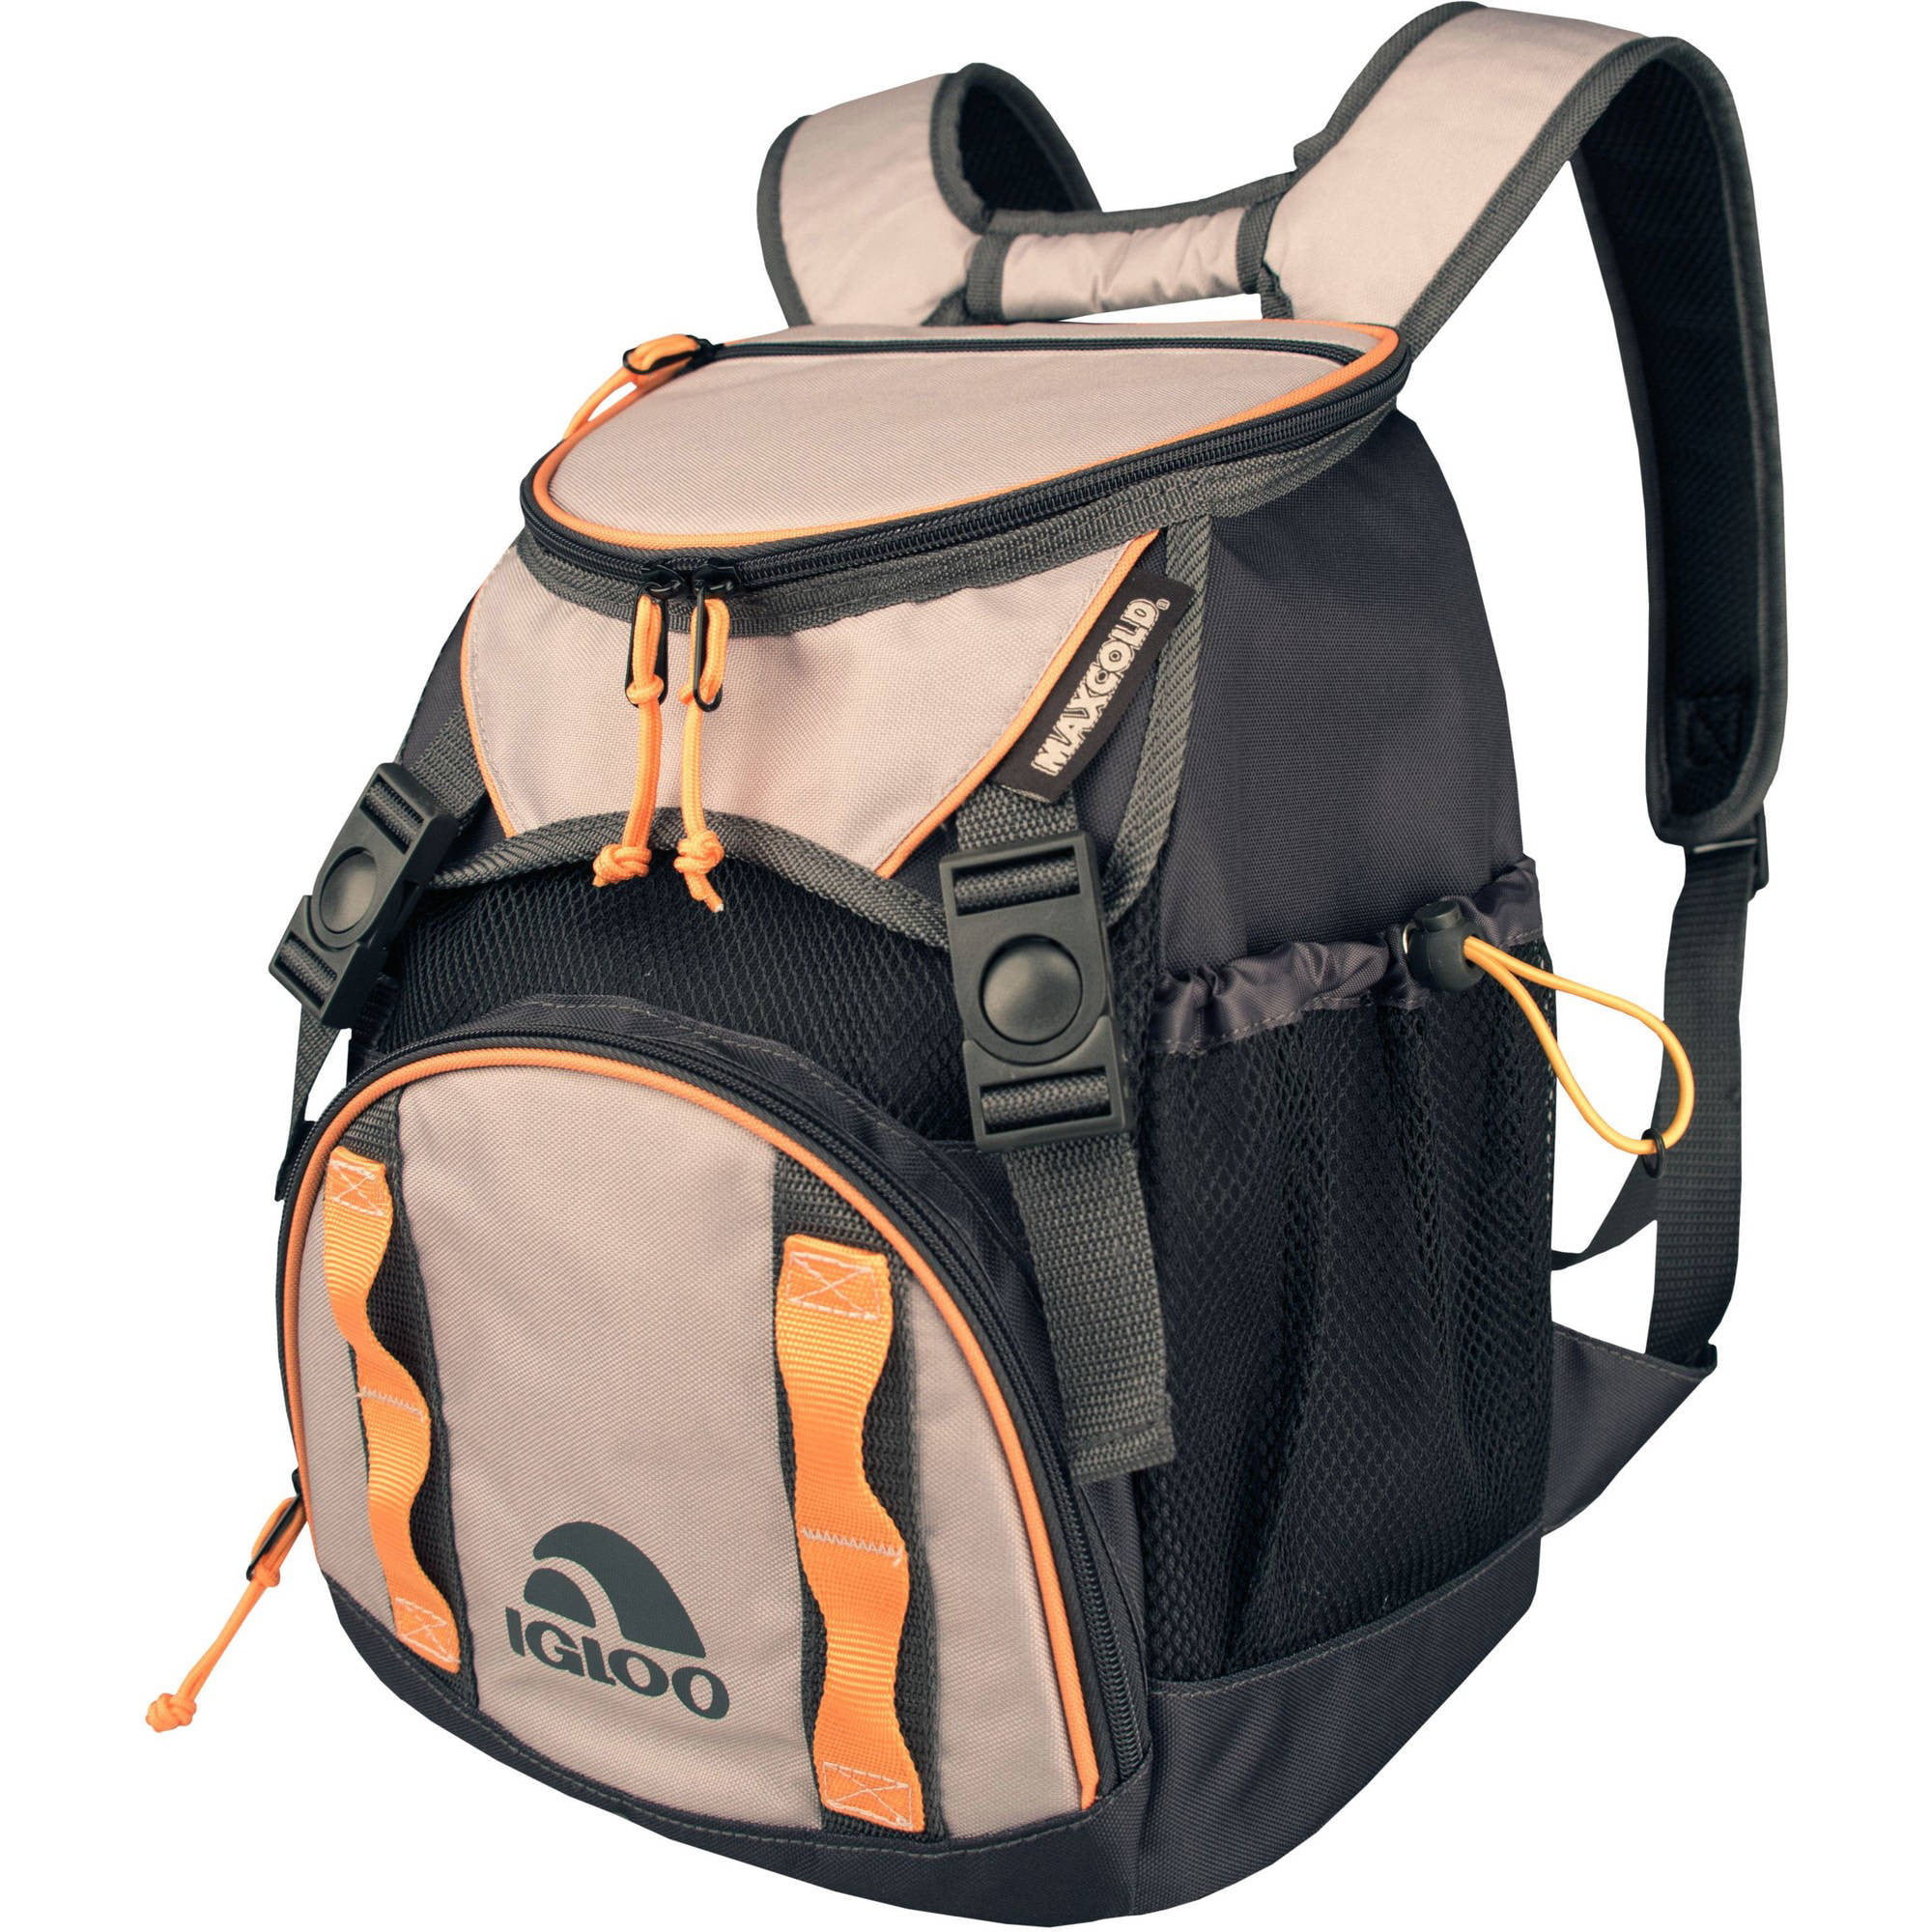 Igloo Backpack Cooler by Generic